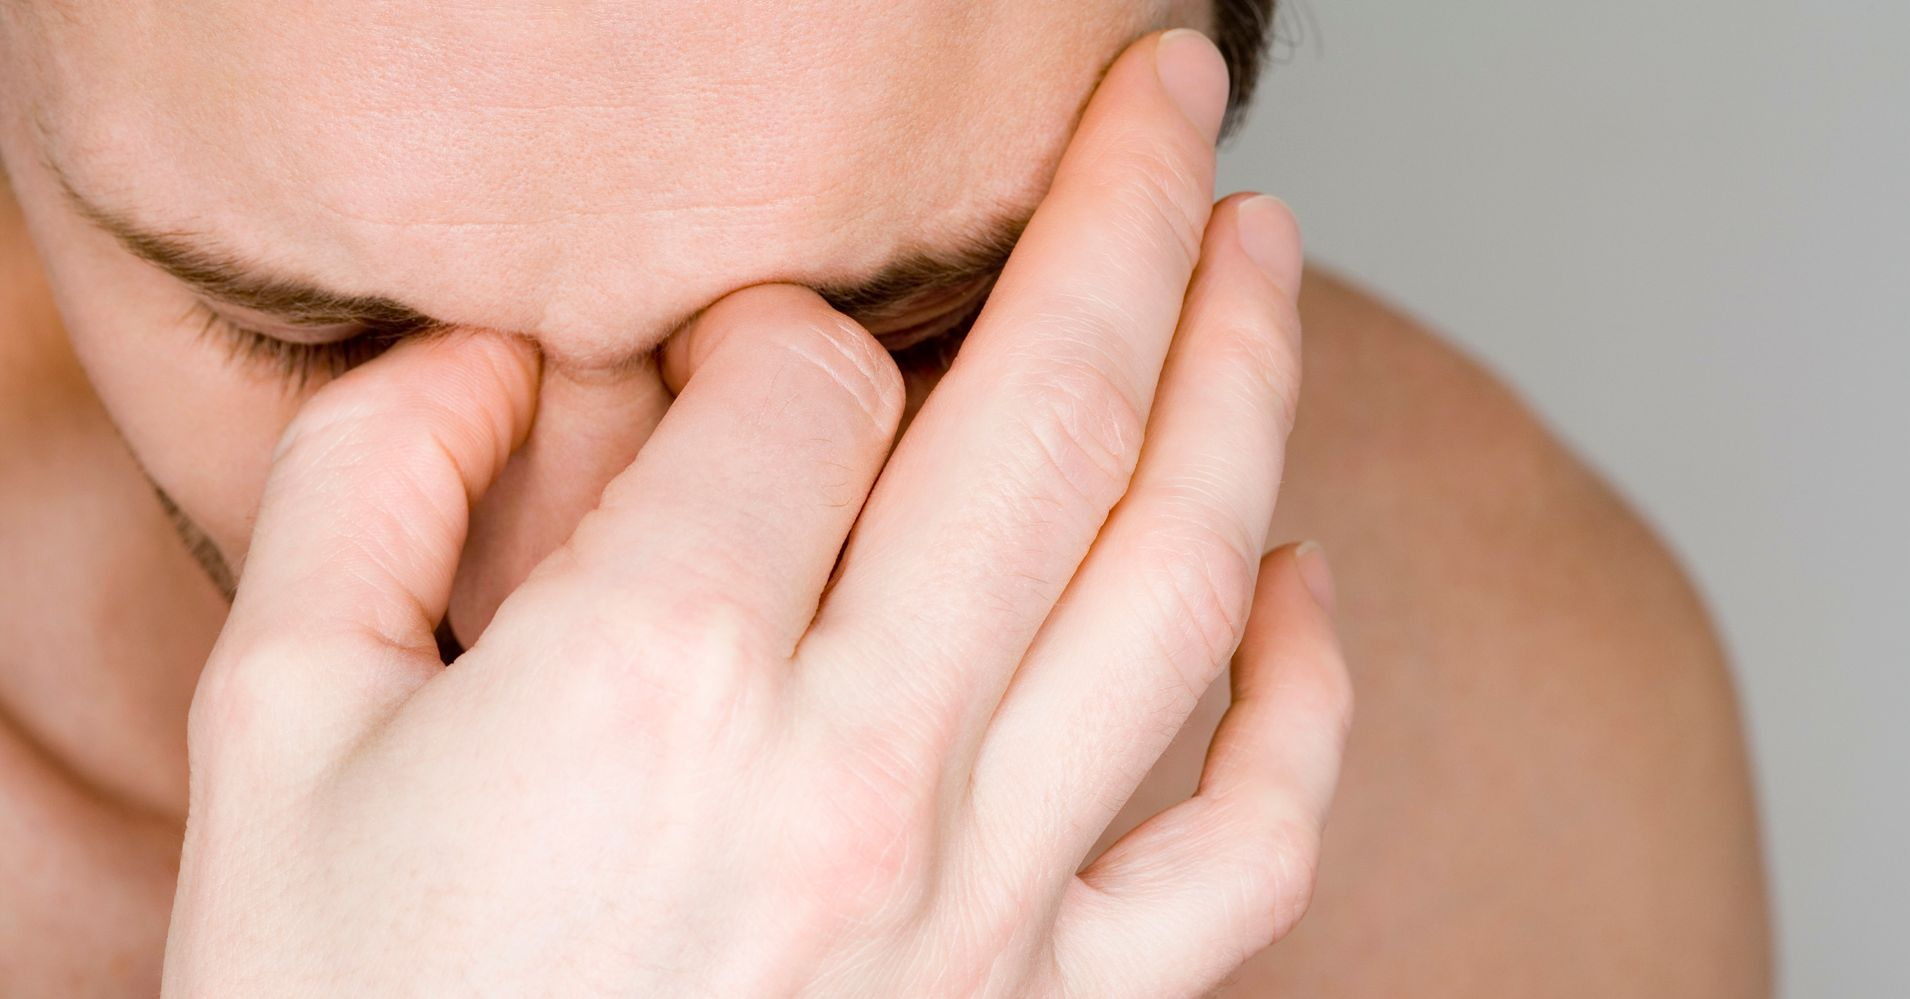 The 5 Best Remedies For Sinus Problems | HuffPost